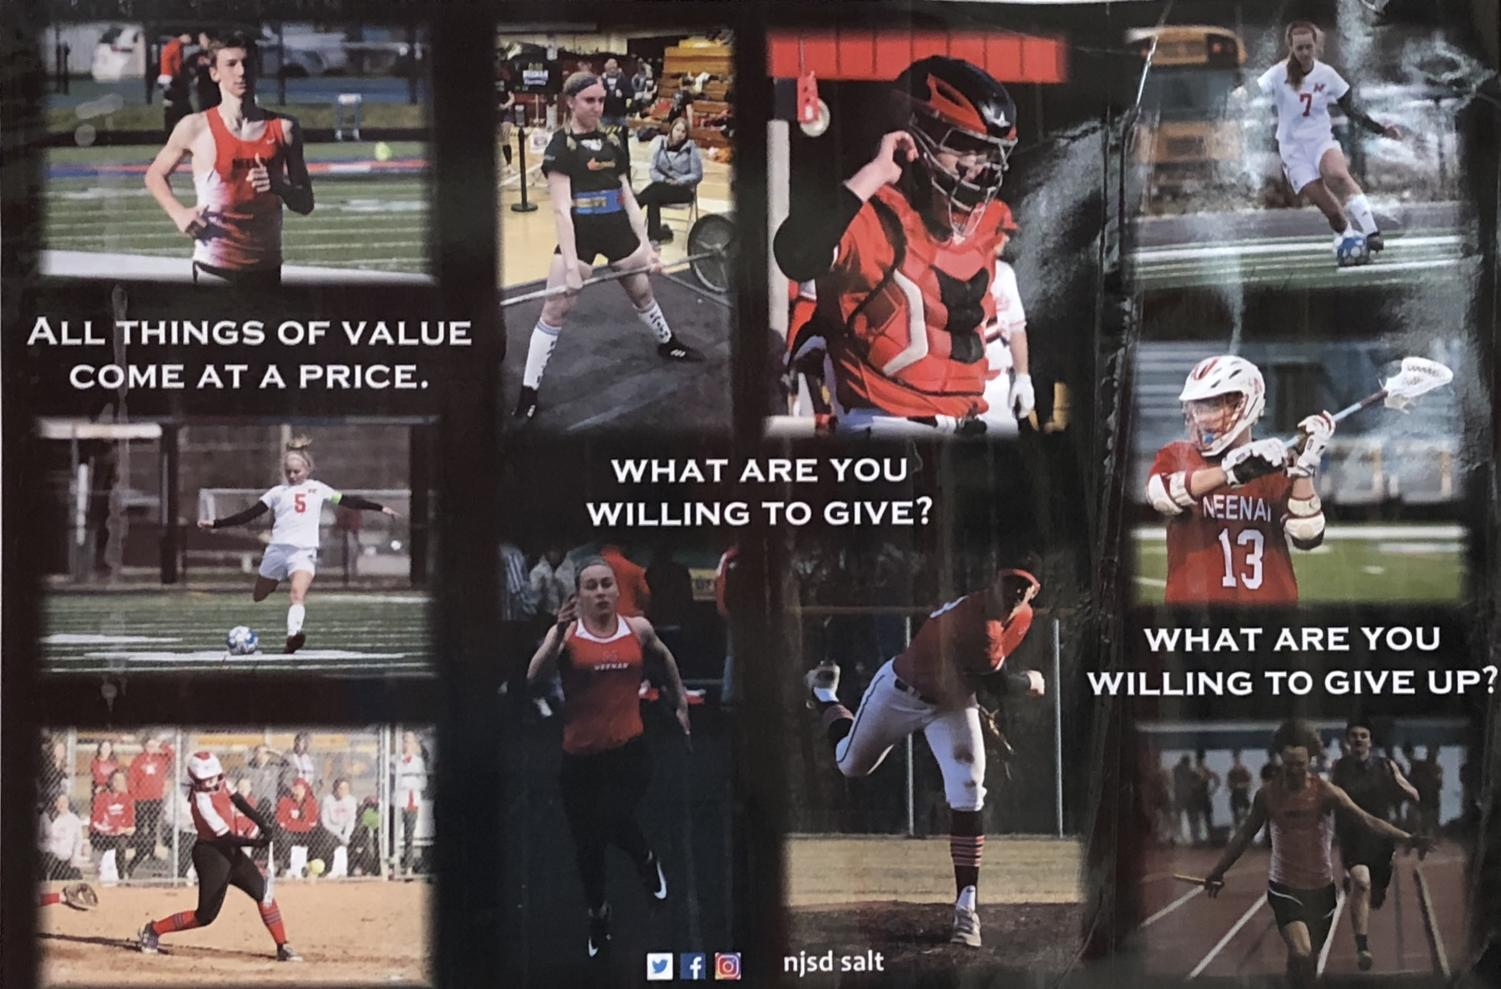 A poster on the walls of NHS showcases the different spring sports offered.